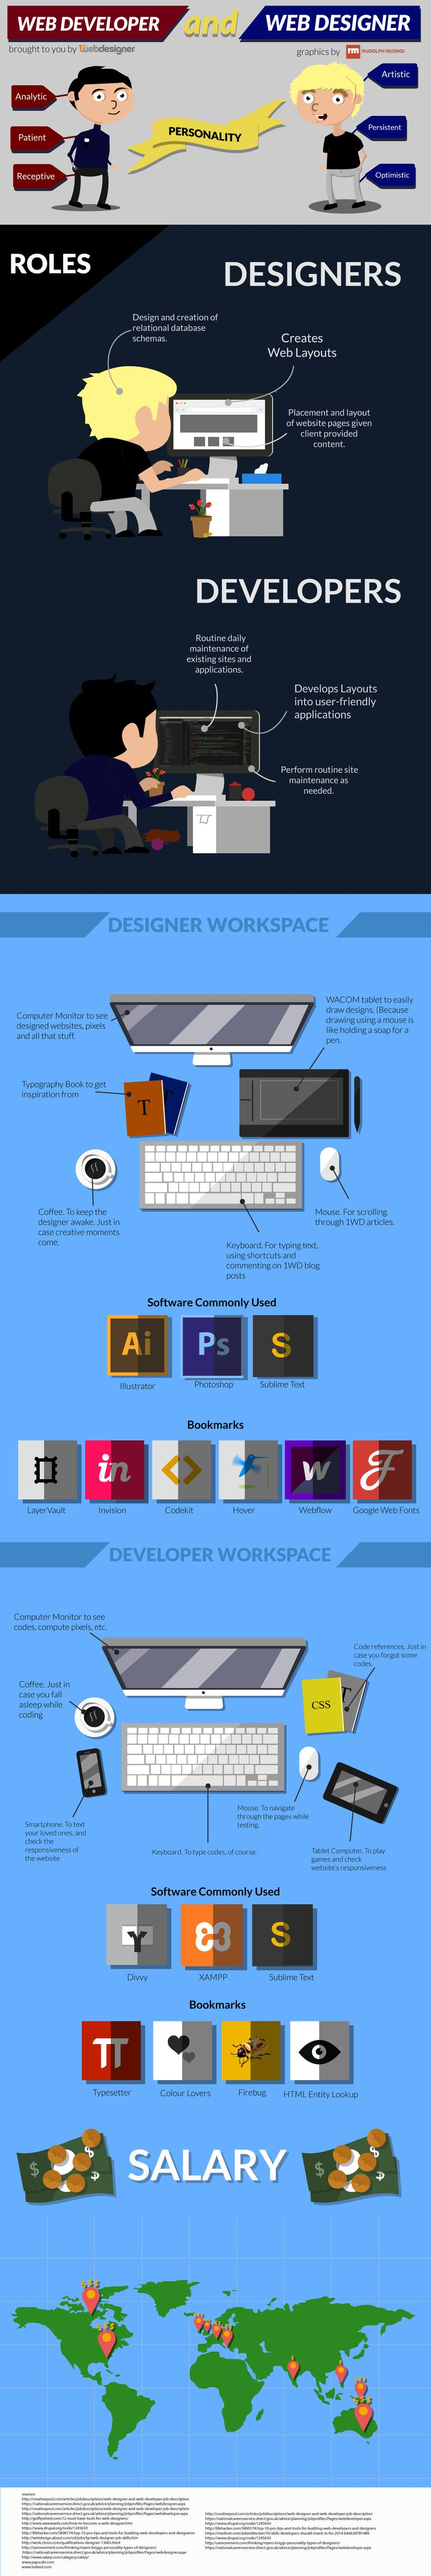 Designer and developer roles infographic